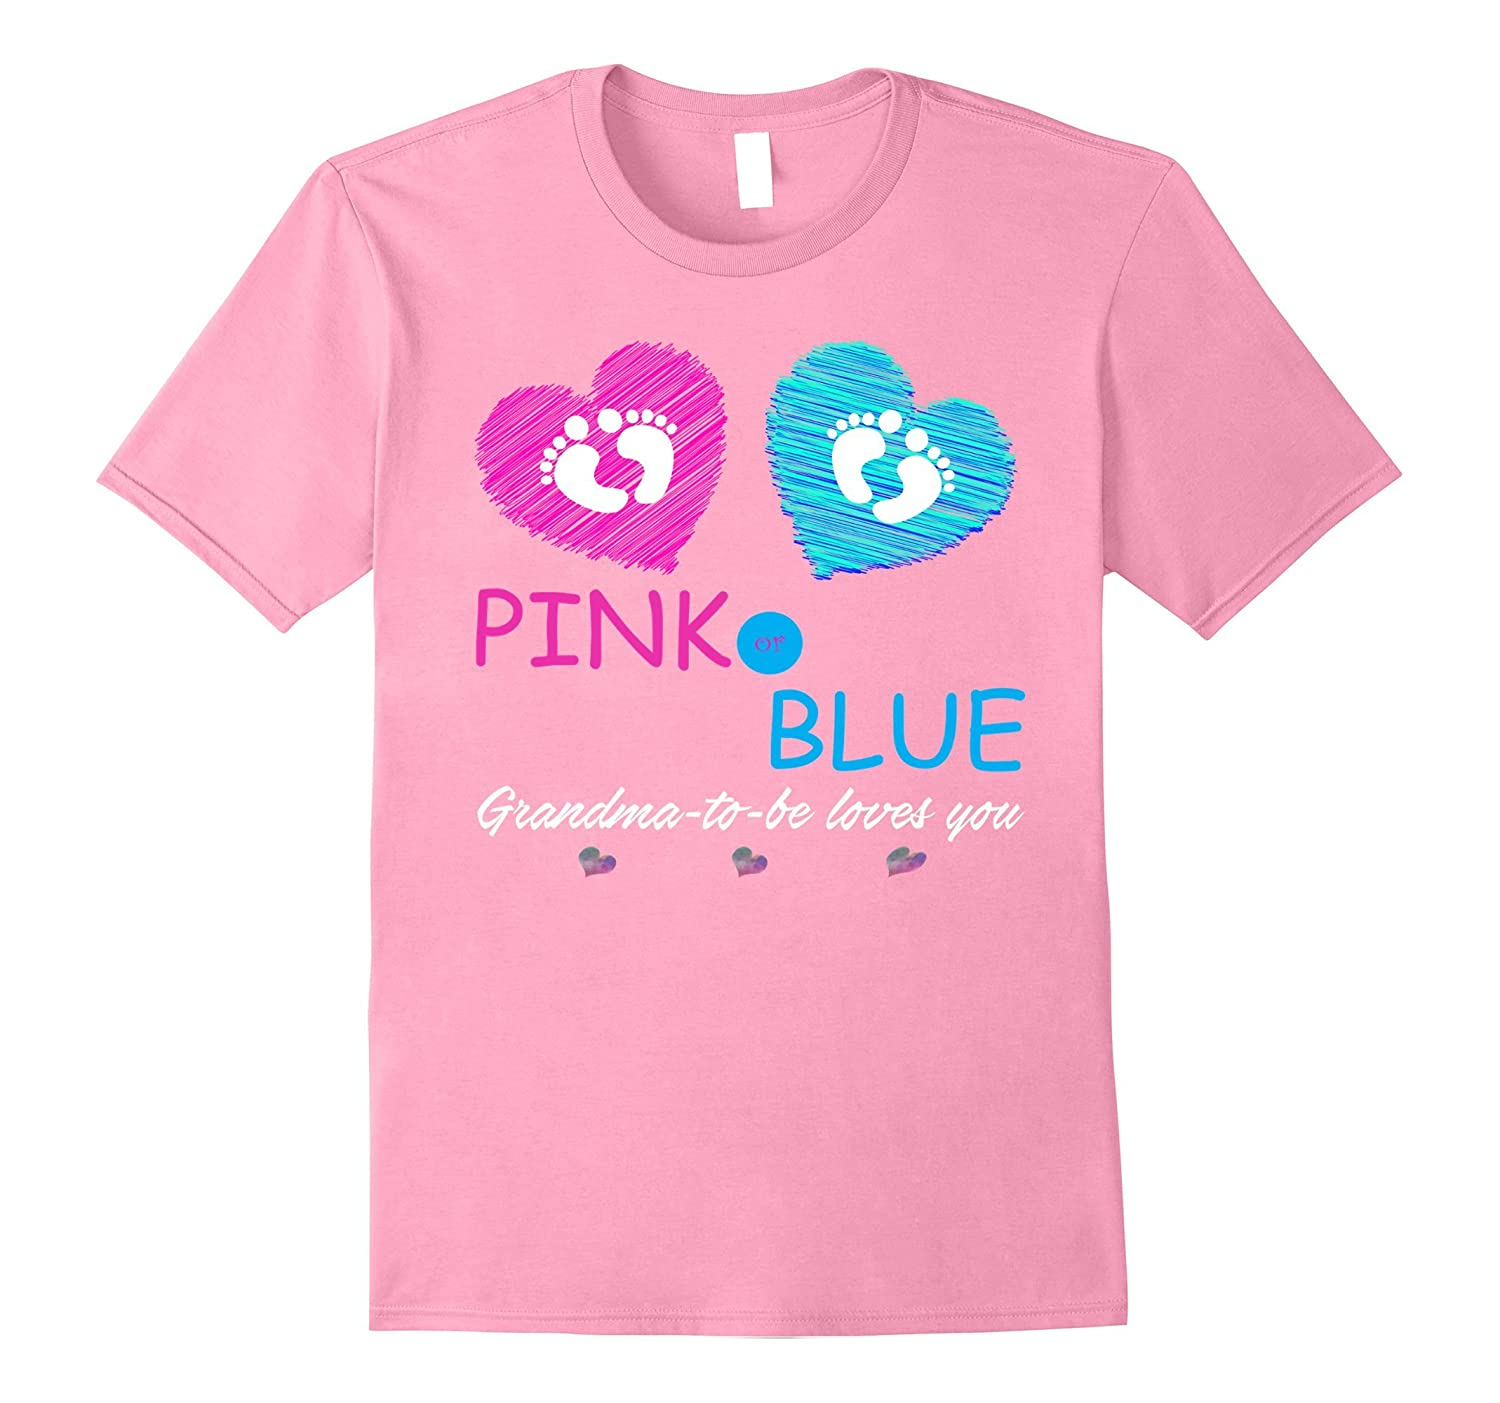 Pink Or Blue Baby Shower Gender Reveal Shirt For Grandma Rt